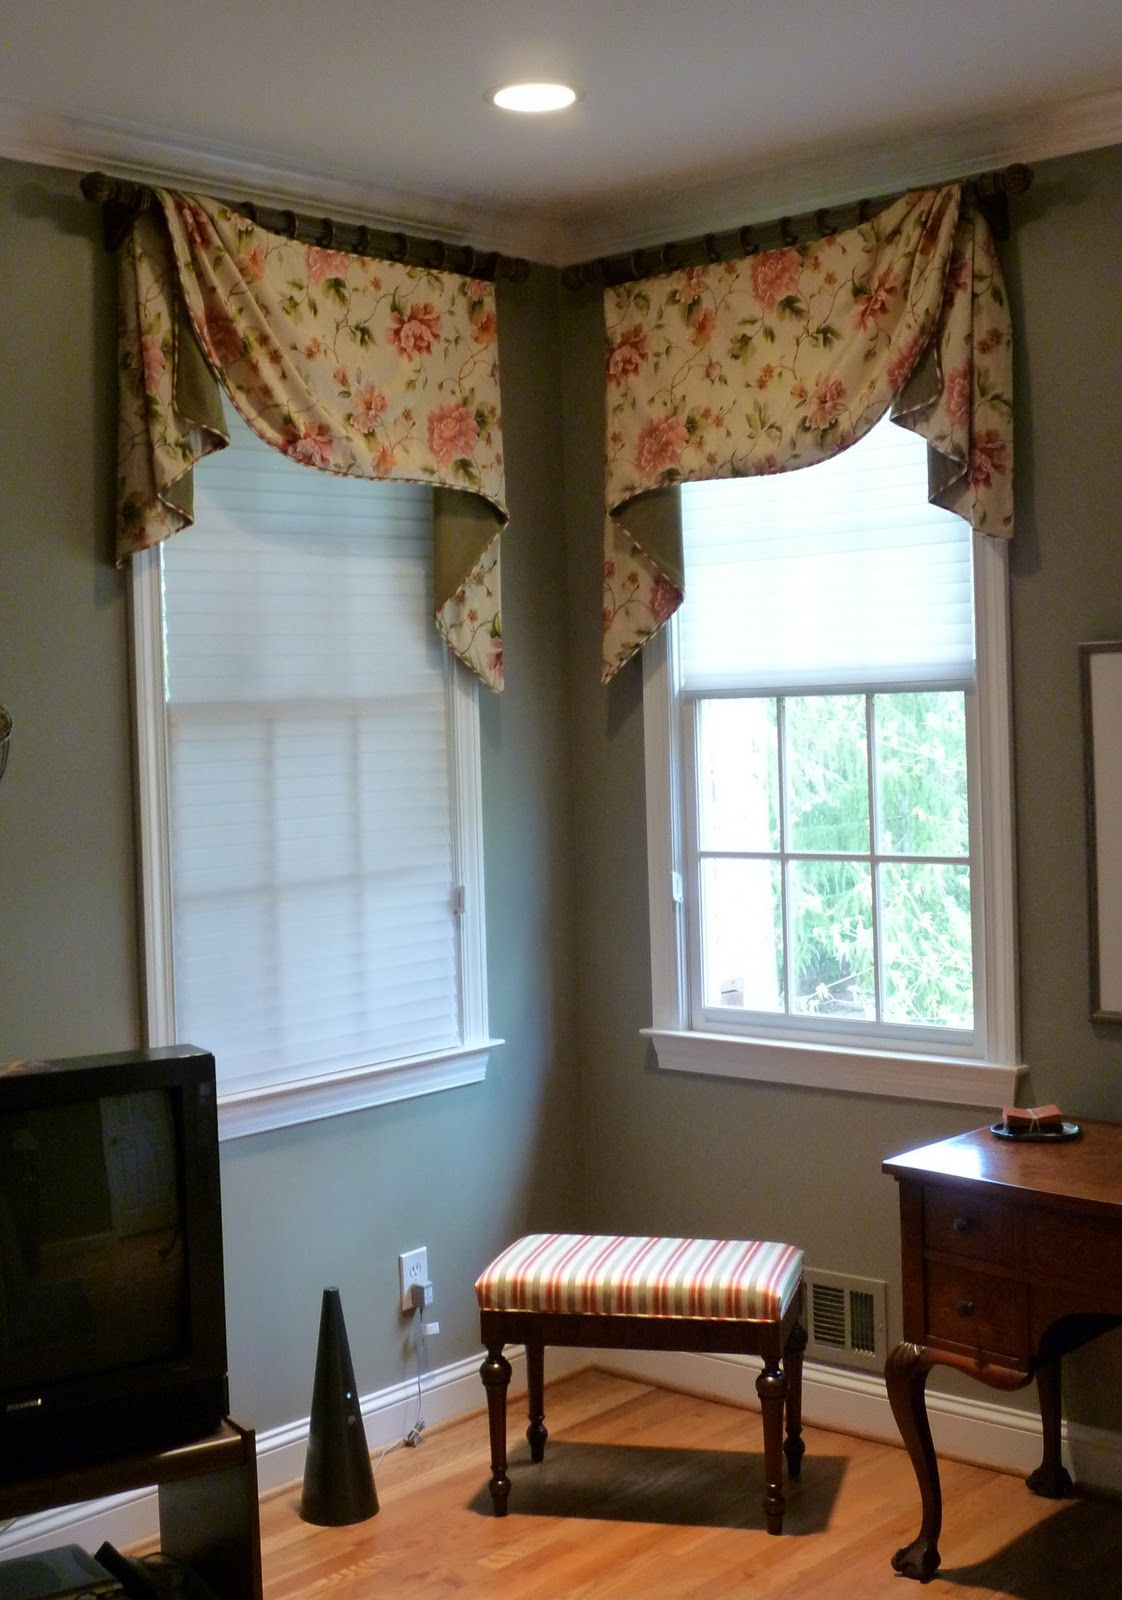 Best Small Window Treatment Ideas Window Treatments 1122X1600 400 x 300